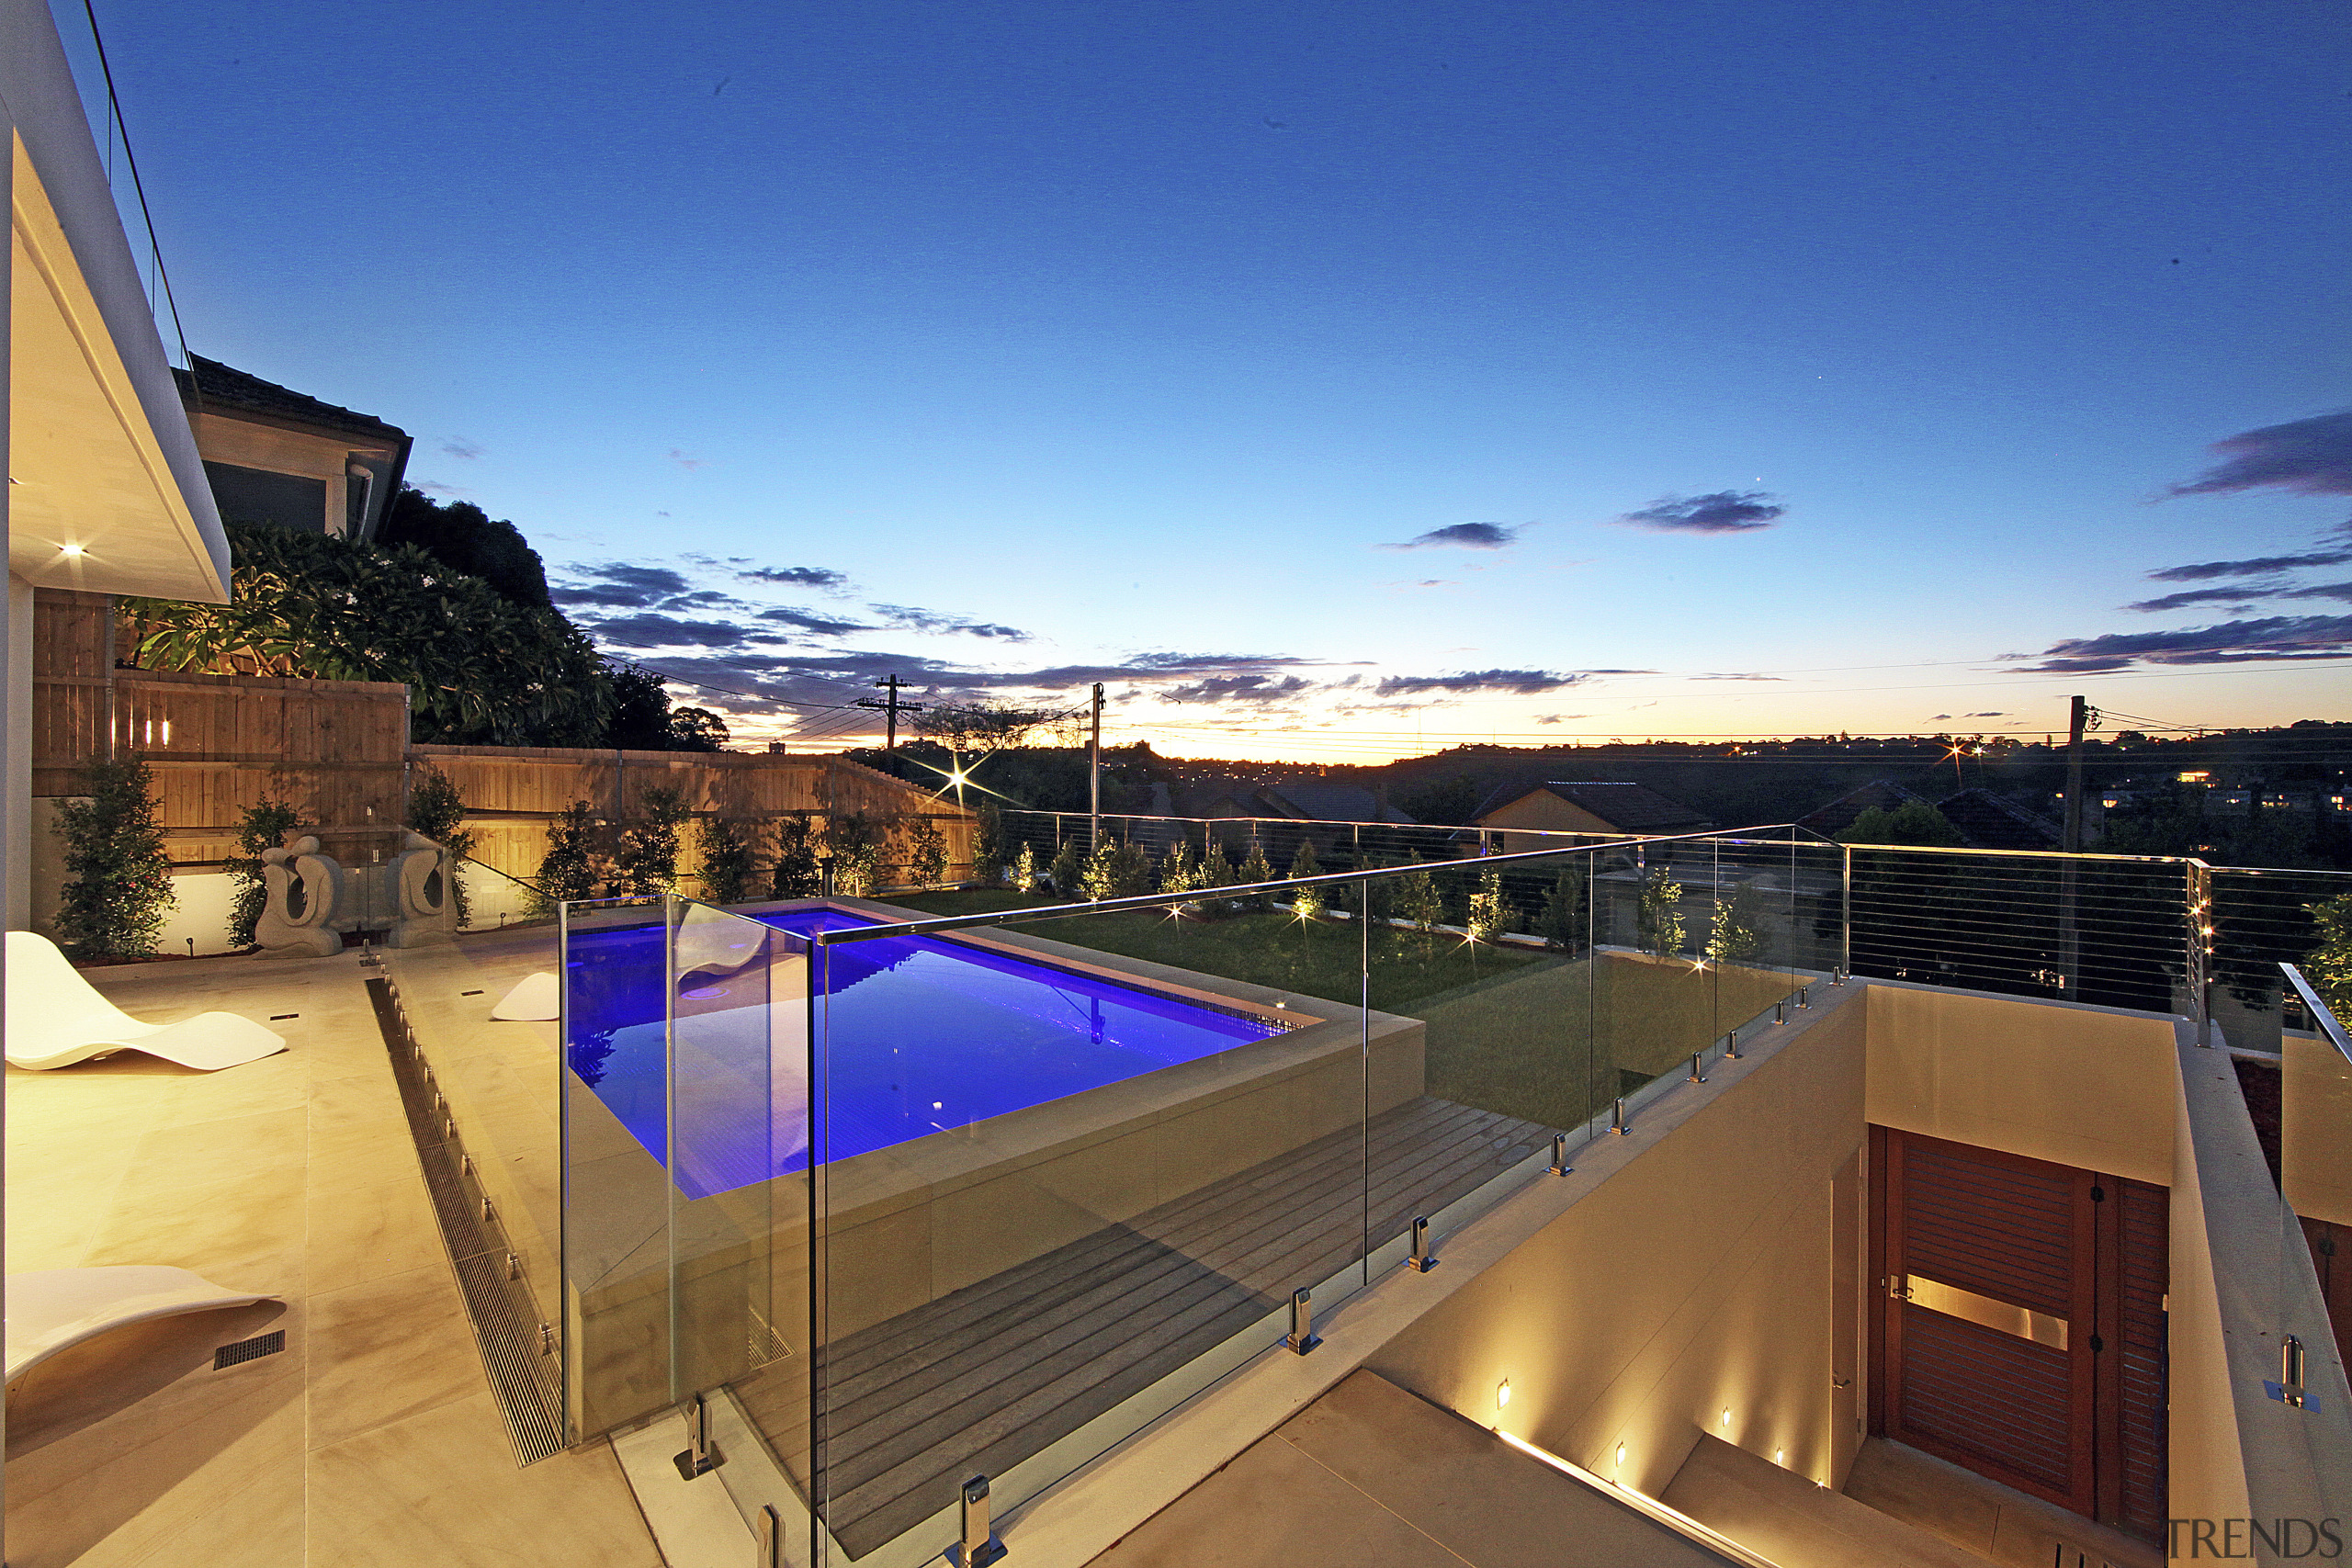 View from balcony to pool at dusk. - apartment, architecture, condominium, estate, home, house, penthouse apartment, property, real estate, roof, sky, swimming pool, villa